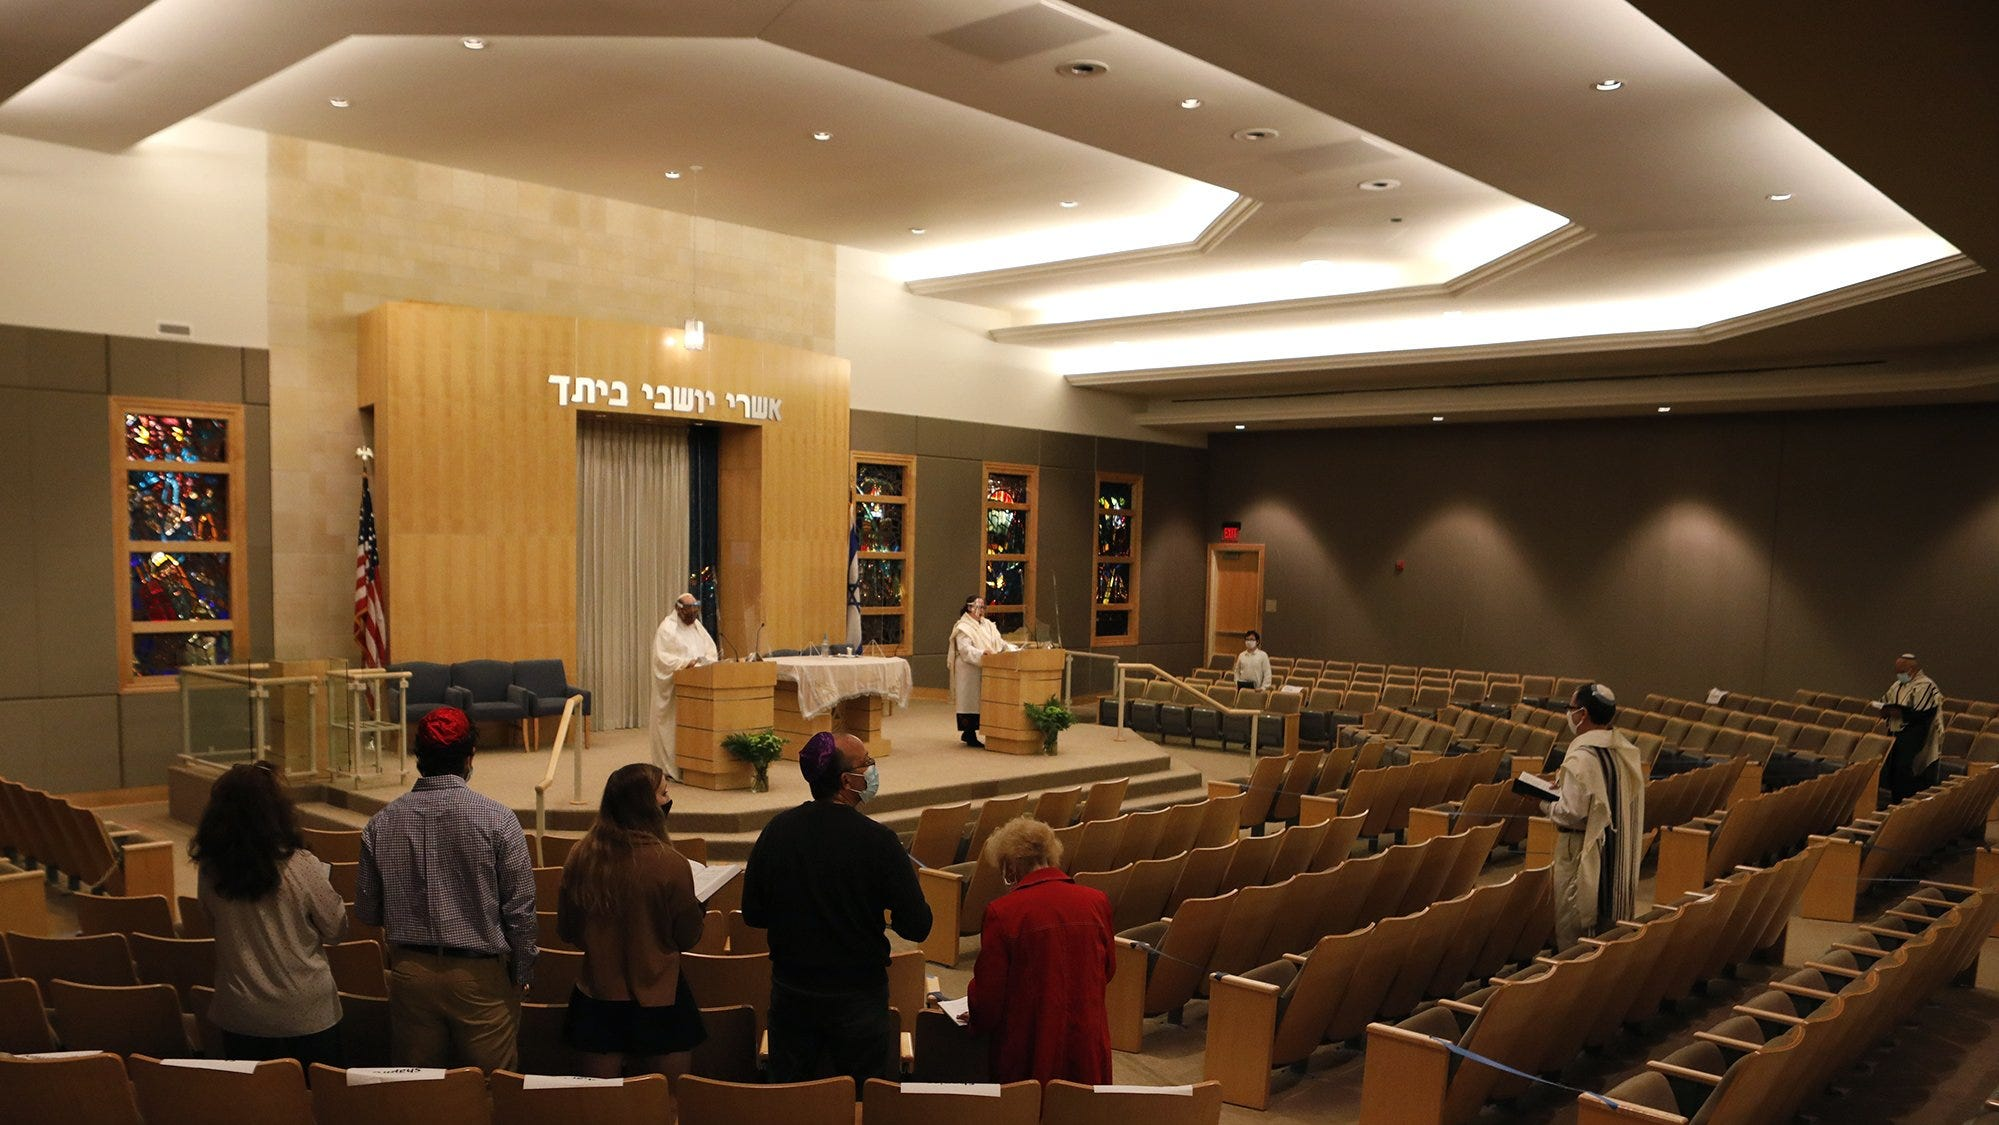 A retired rabbi from Minnesota came to Bexley synagogue Agudas Achim to do the service marking the end of the Yom Kippur Monday evening. After the service, members gathered outside to listen to the blowing of the shofar.